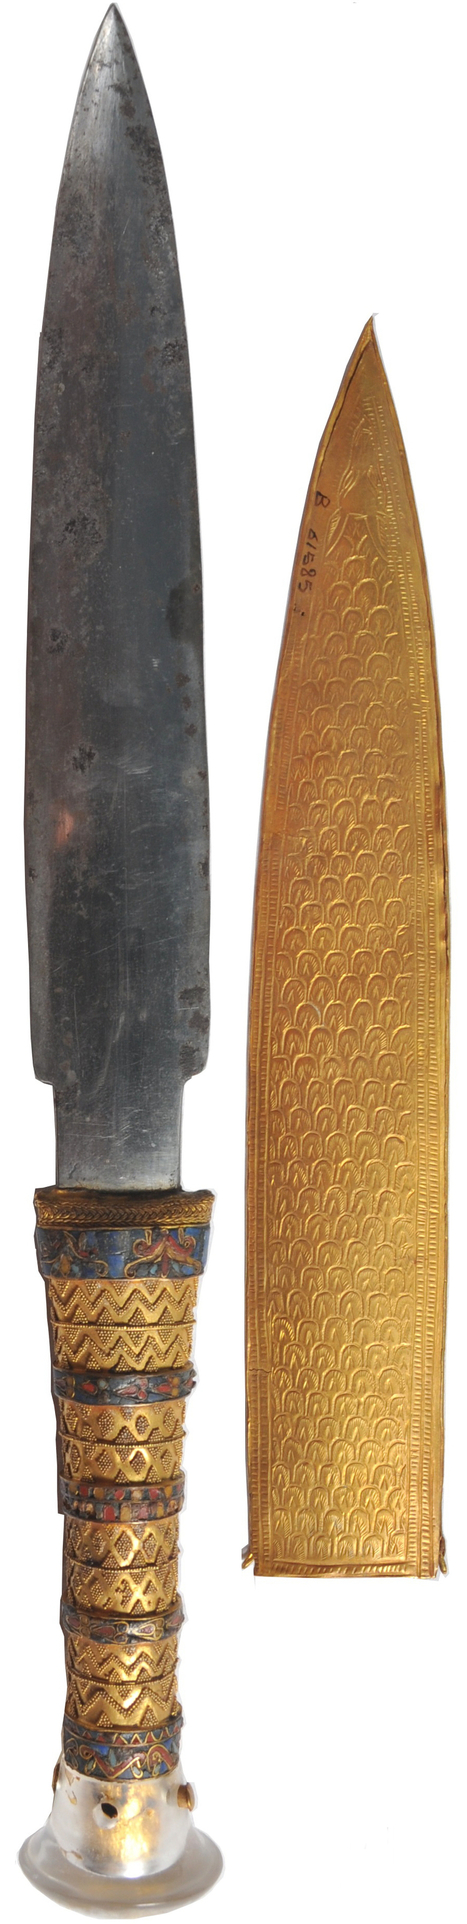 King Tutankhamun's dagger was made from a meteorite by Abdelrazek Elnaggar | International Institute for Conservation of Historic and Artistic Works | News in Conservation | Scoop.it